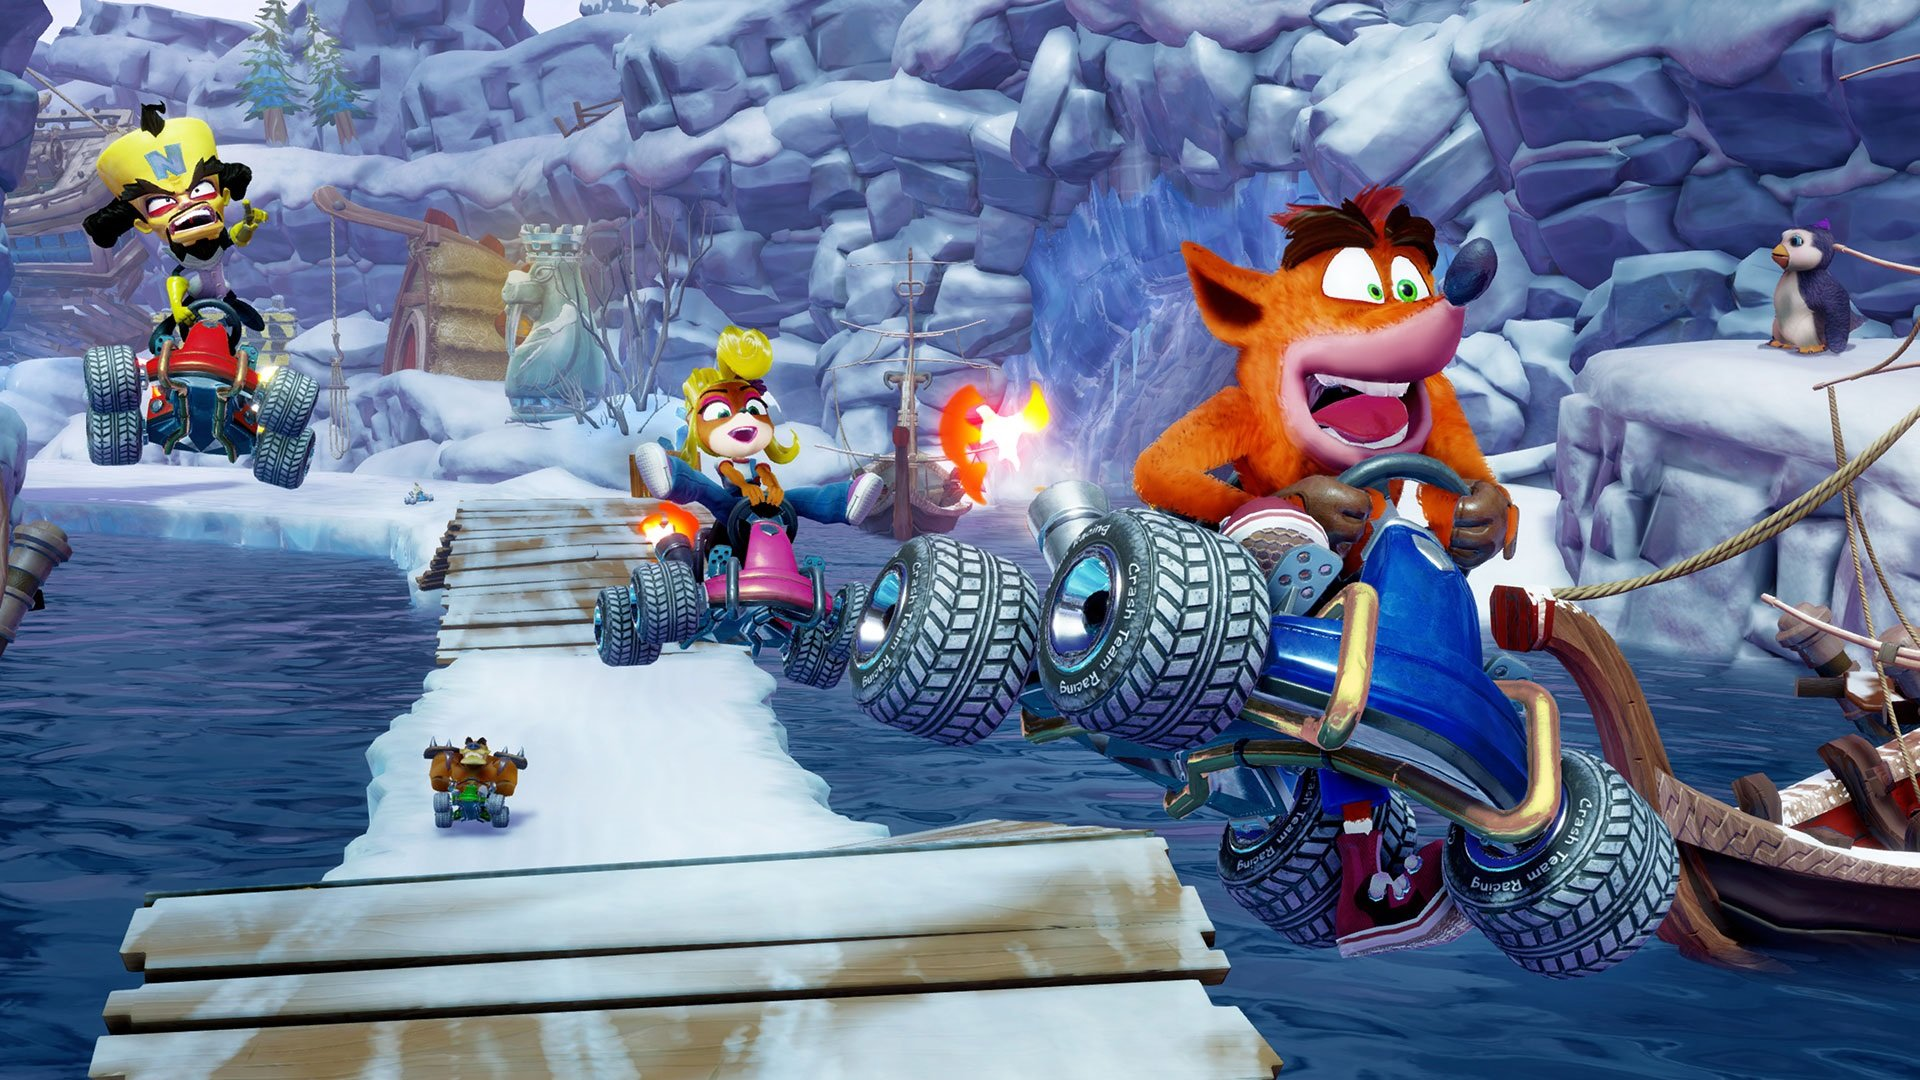 Depending on how you play, you can beat Crash Team Racing Nitro-Fueled in as little as 6 hours or as many as 8 hours.